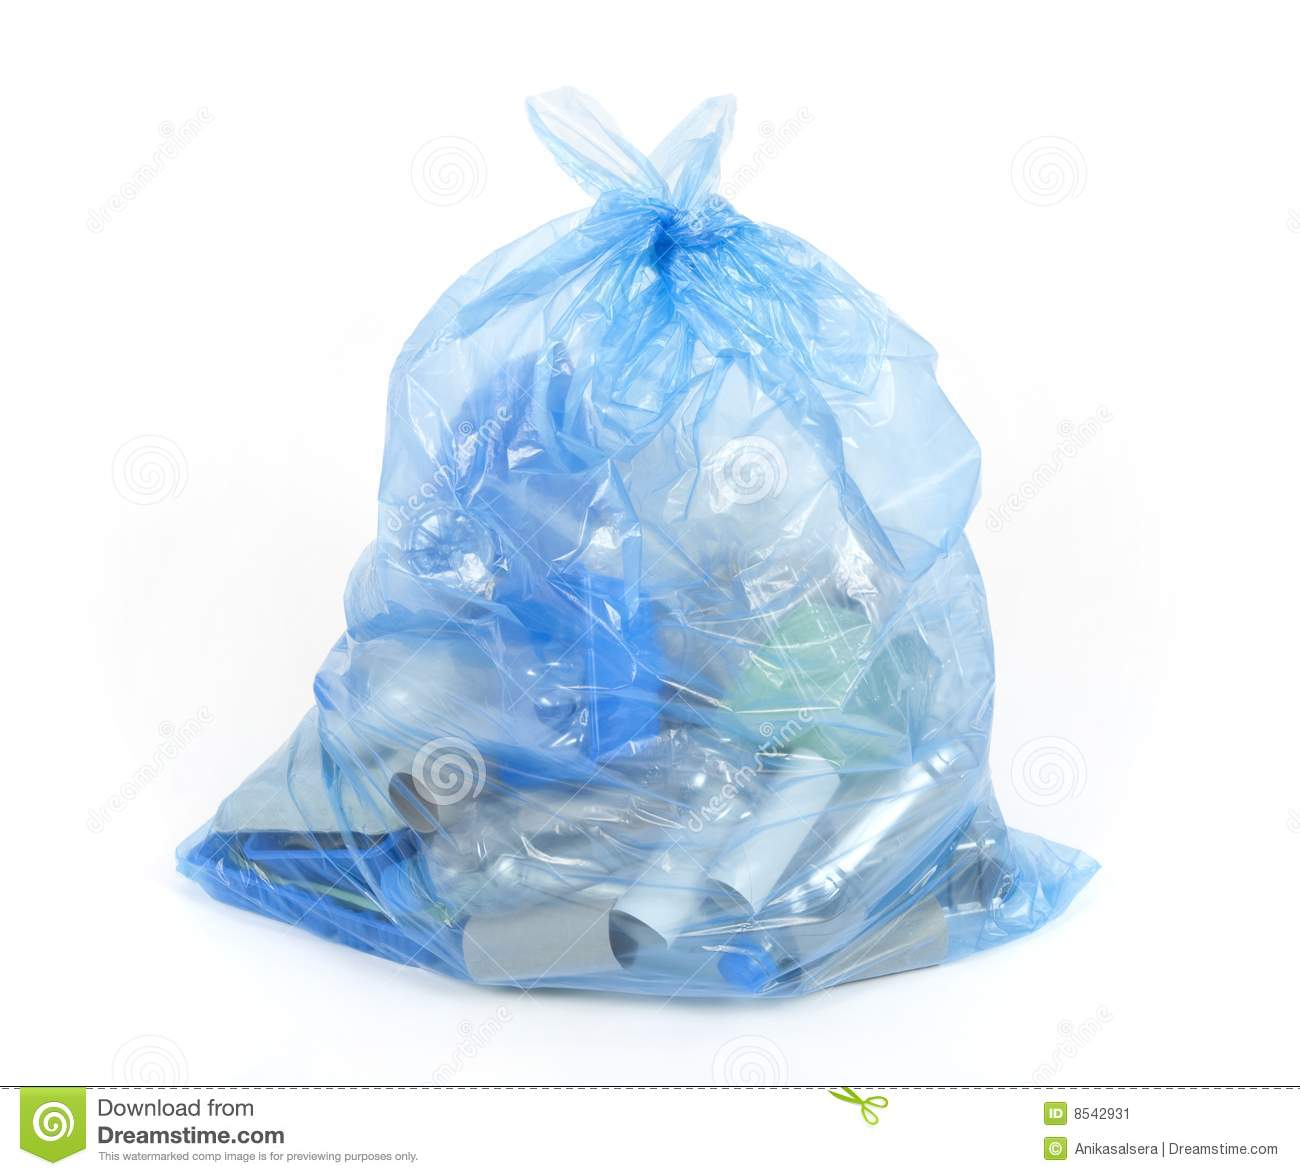 Blue bag with plastic and cardboard for recycling.